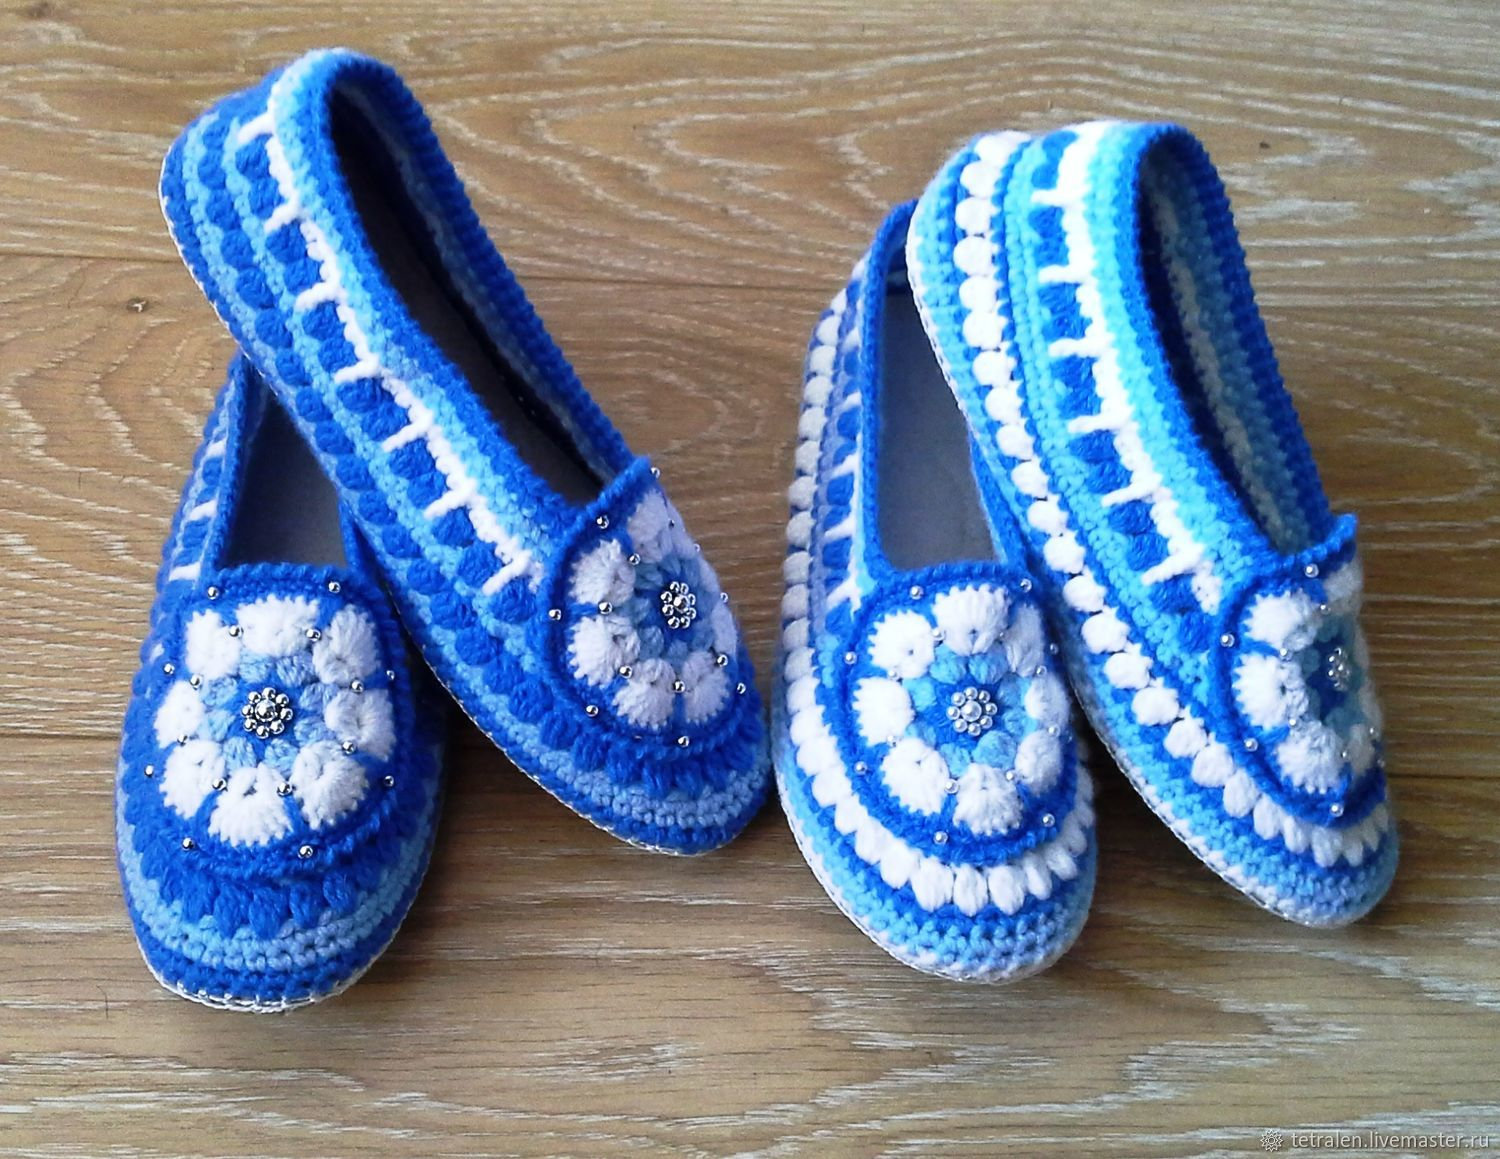 d42f14843c0b40 Handmade Shoes handmade. Slippers crochet Snezhana. Knitted stuff from  Svetlana. My Livemaster.